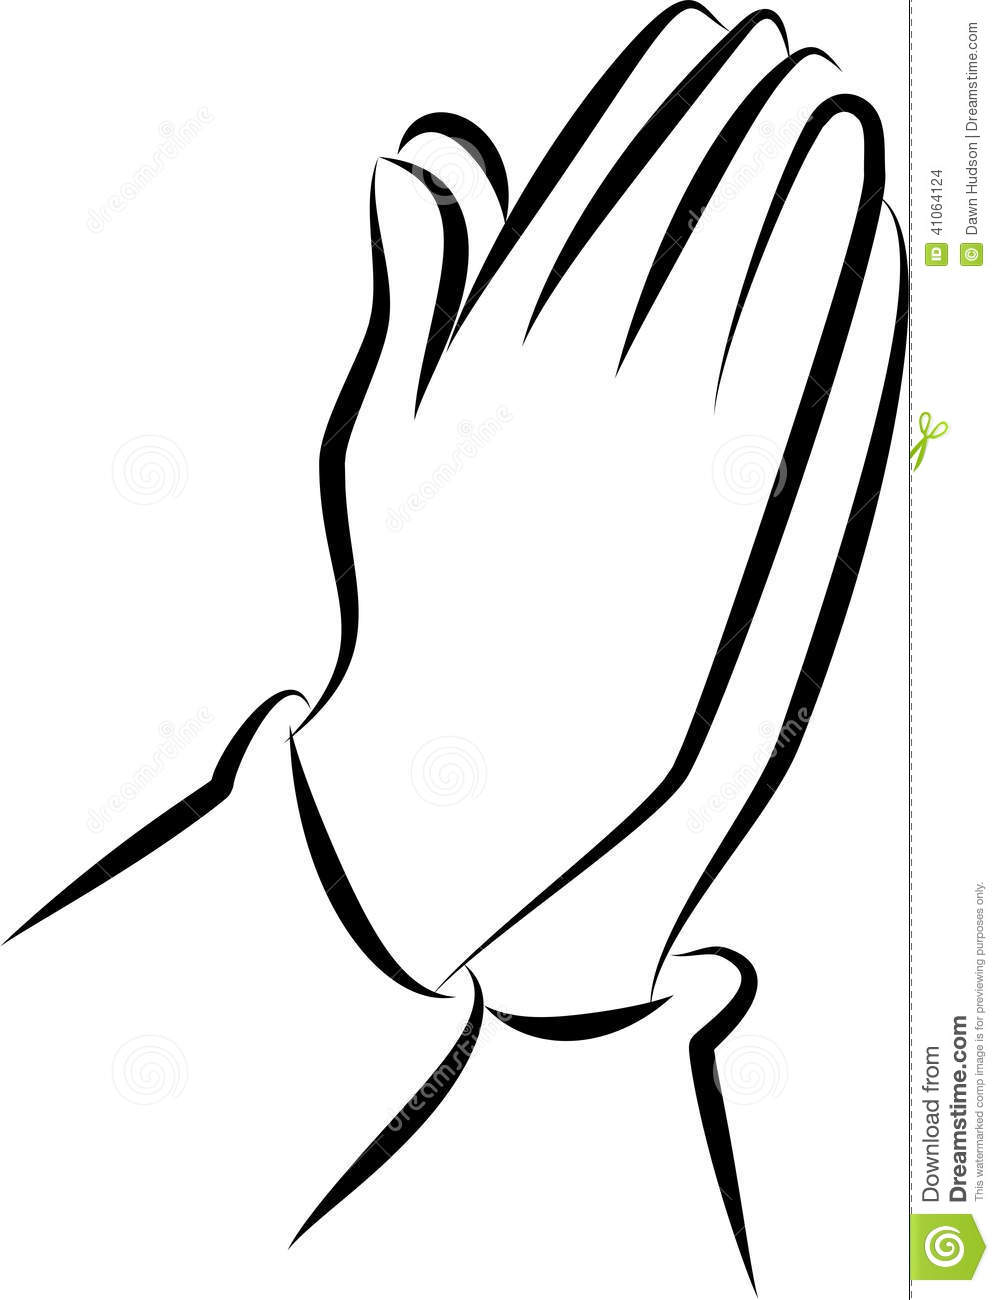 praying hands clip art stock illustration illustration of faith rh dreamstime com clip art praying hands on a bible clip art praying hands black and white